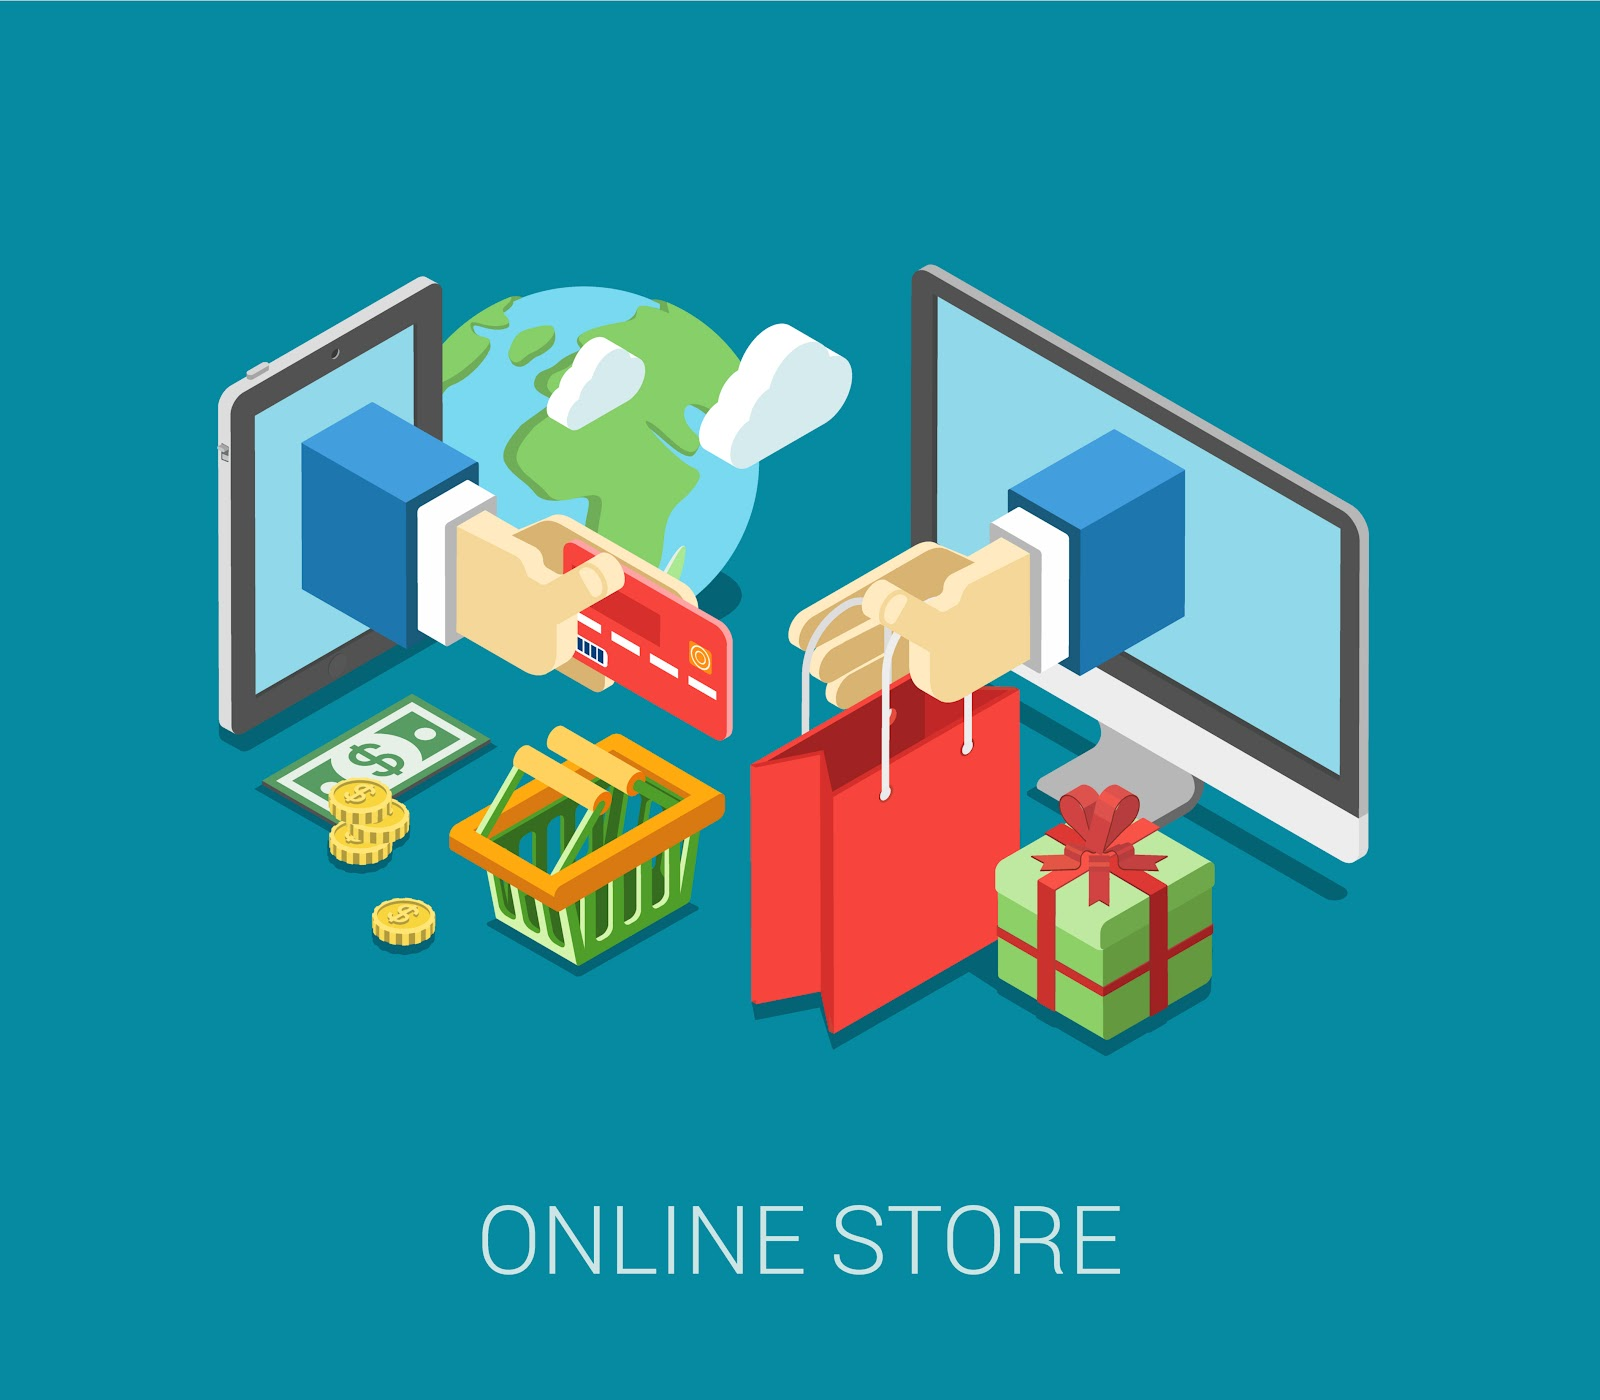 Online shopping is the future of retail with cloud commerce leading the charge.